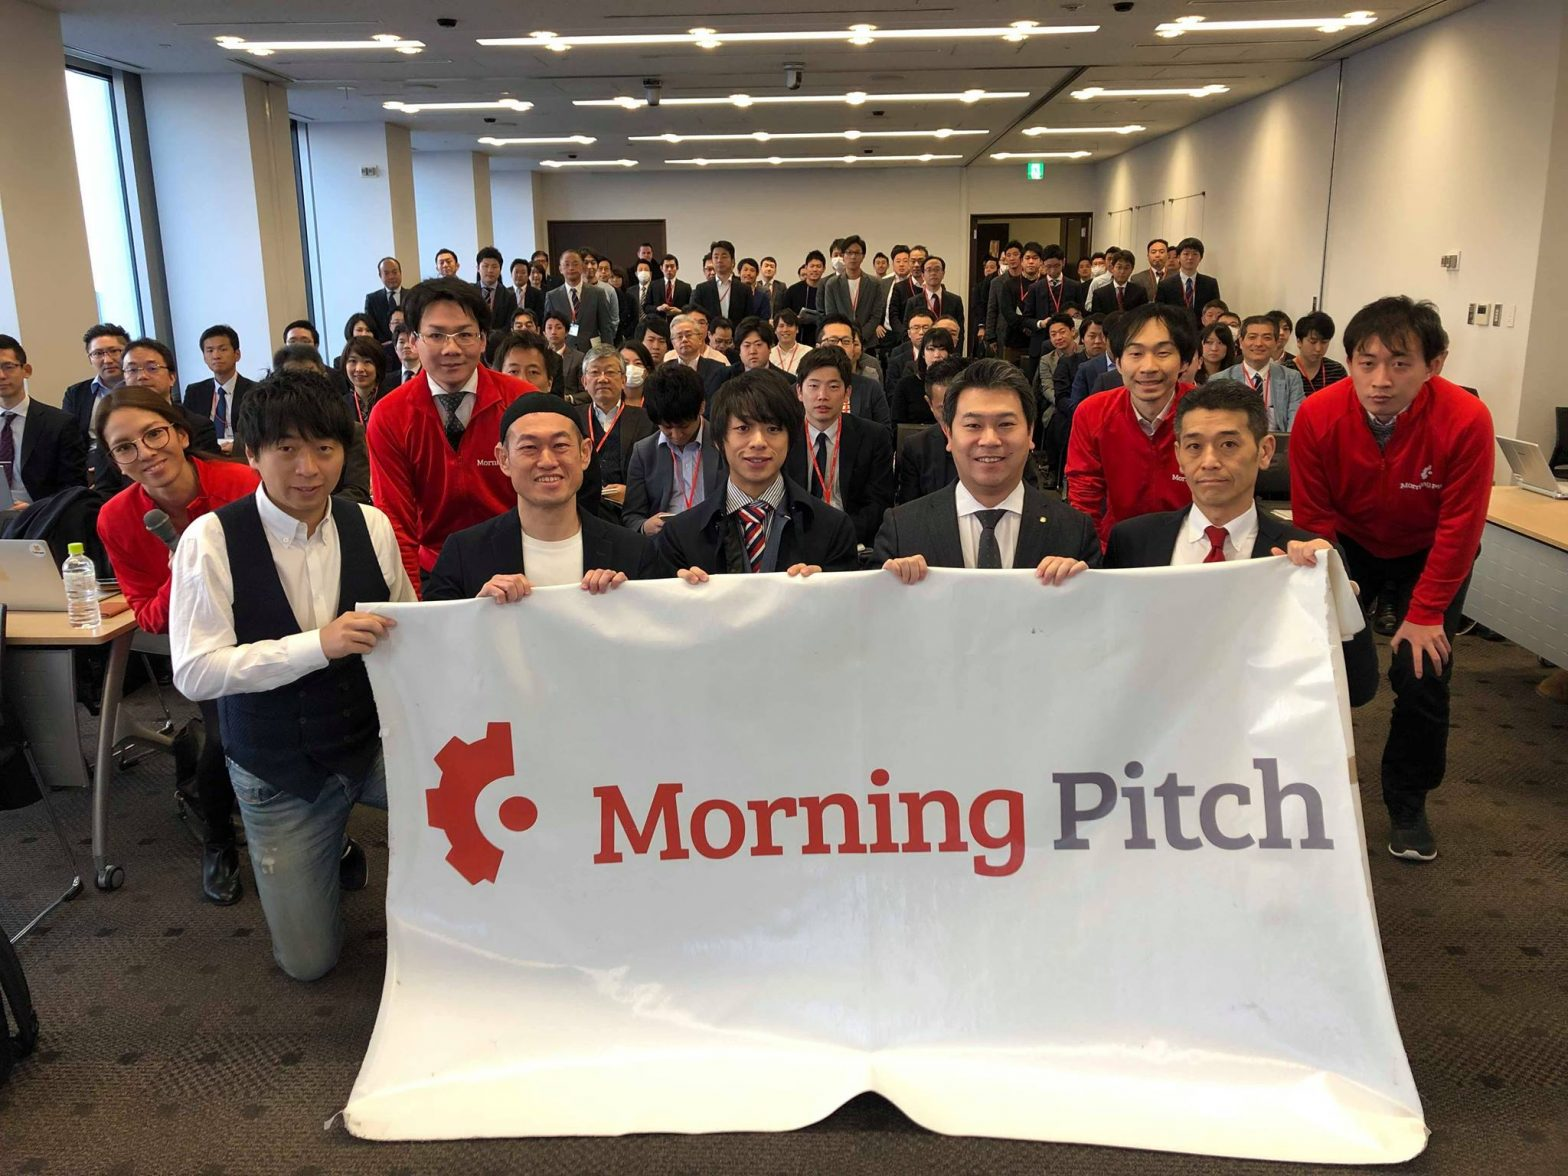 MorningPitch